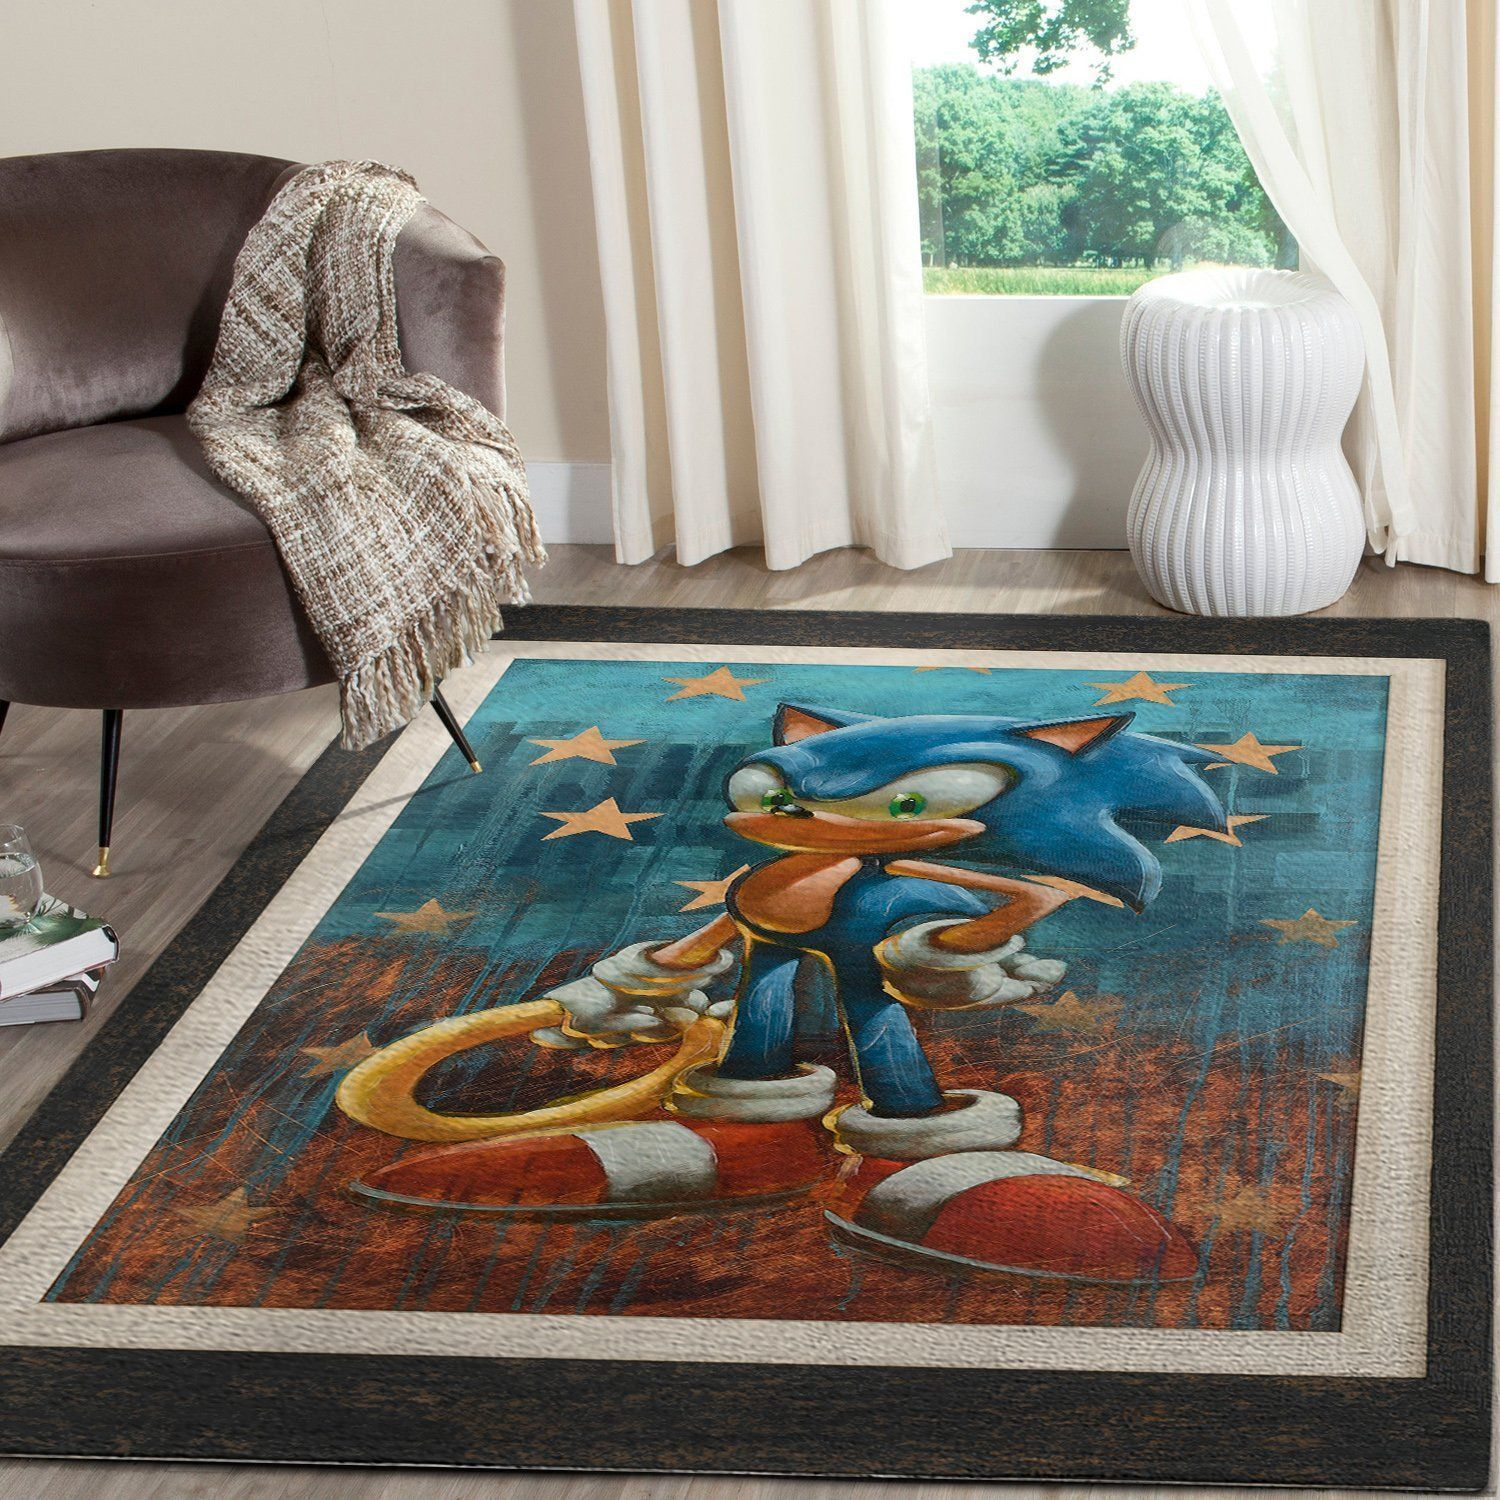 Sonic the Hedgehog Area Rug / Gaming Carpet, Gamer Living Room Rugs, Floor Decor 101117